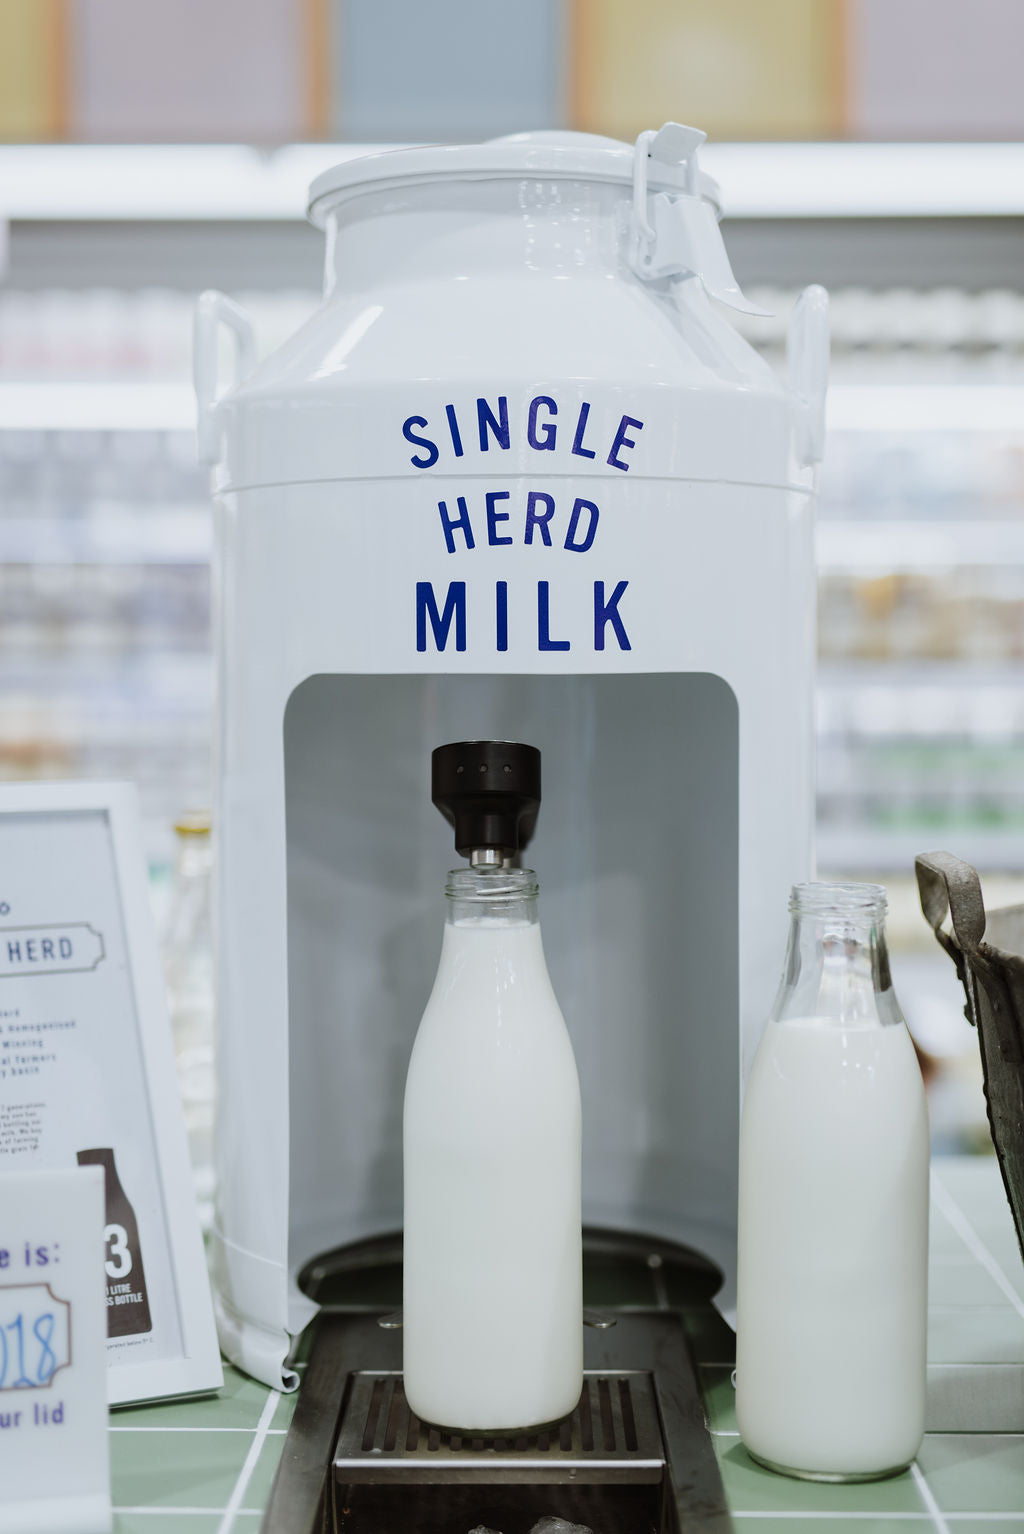 harris farm darby st cooks hill poor your own milk on tap